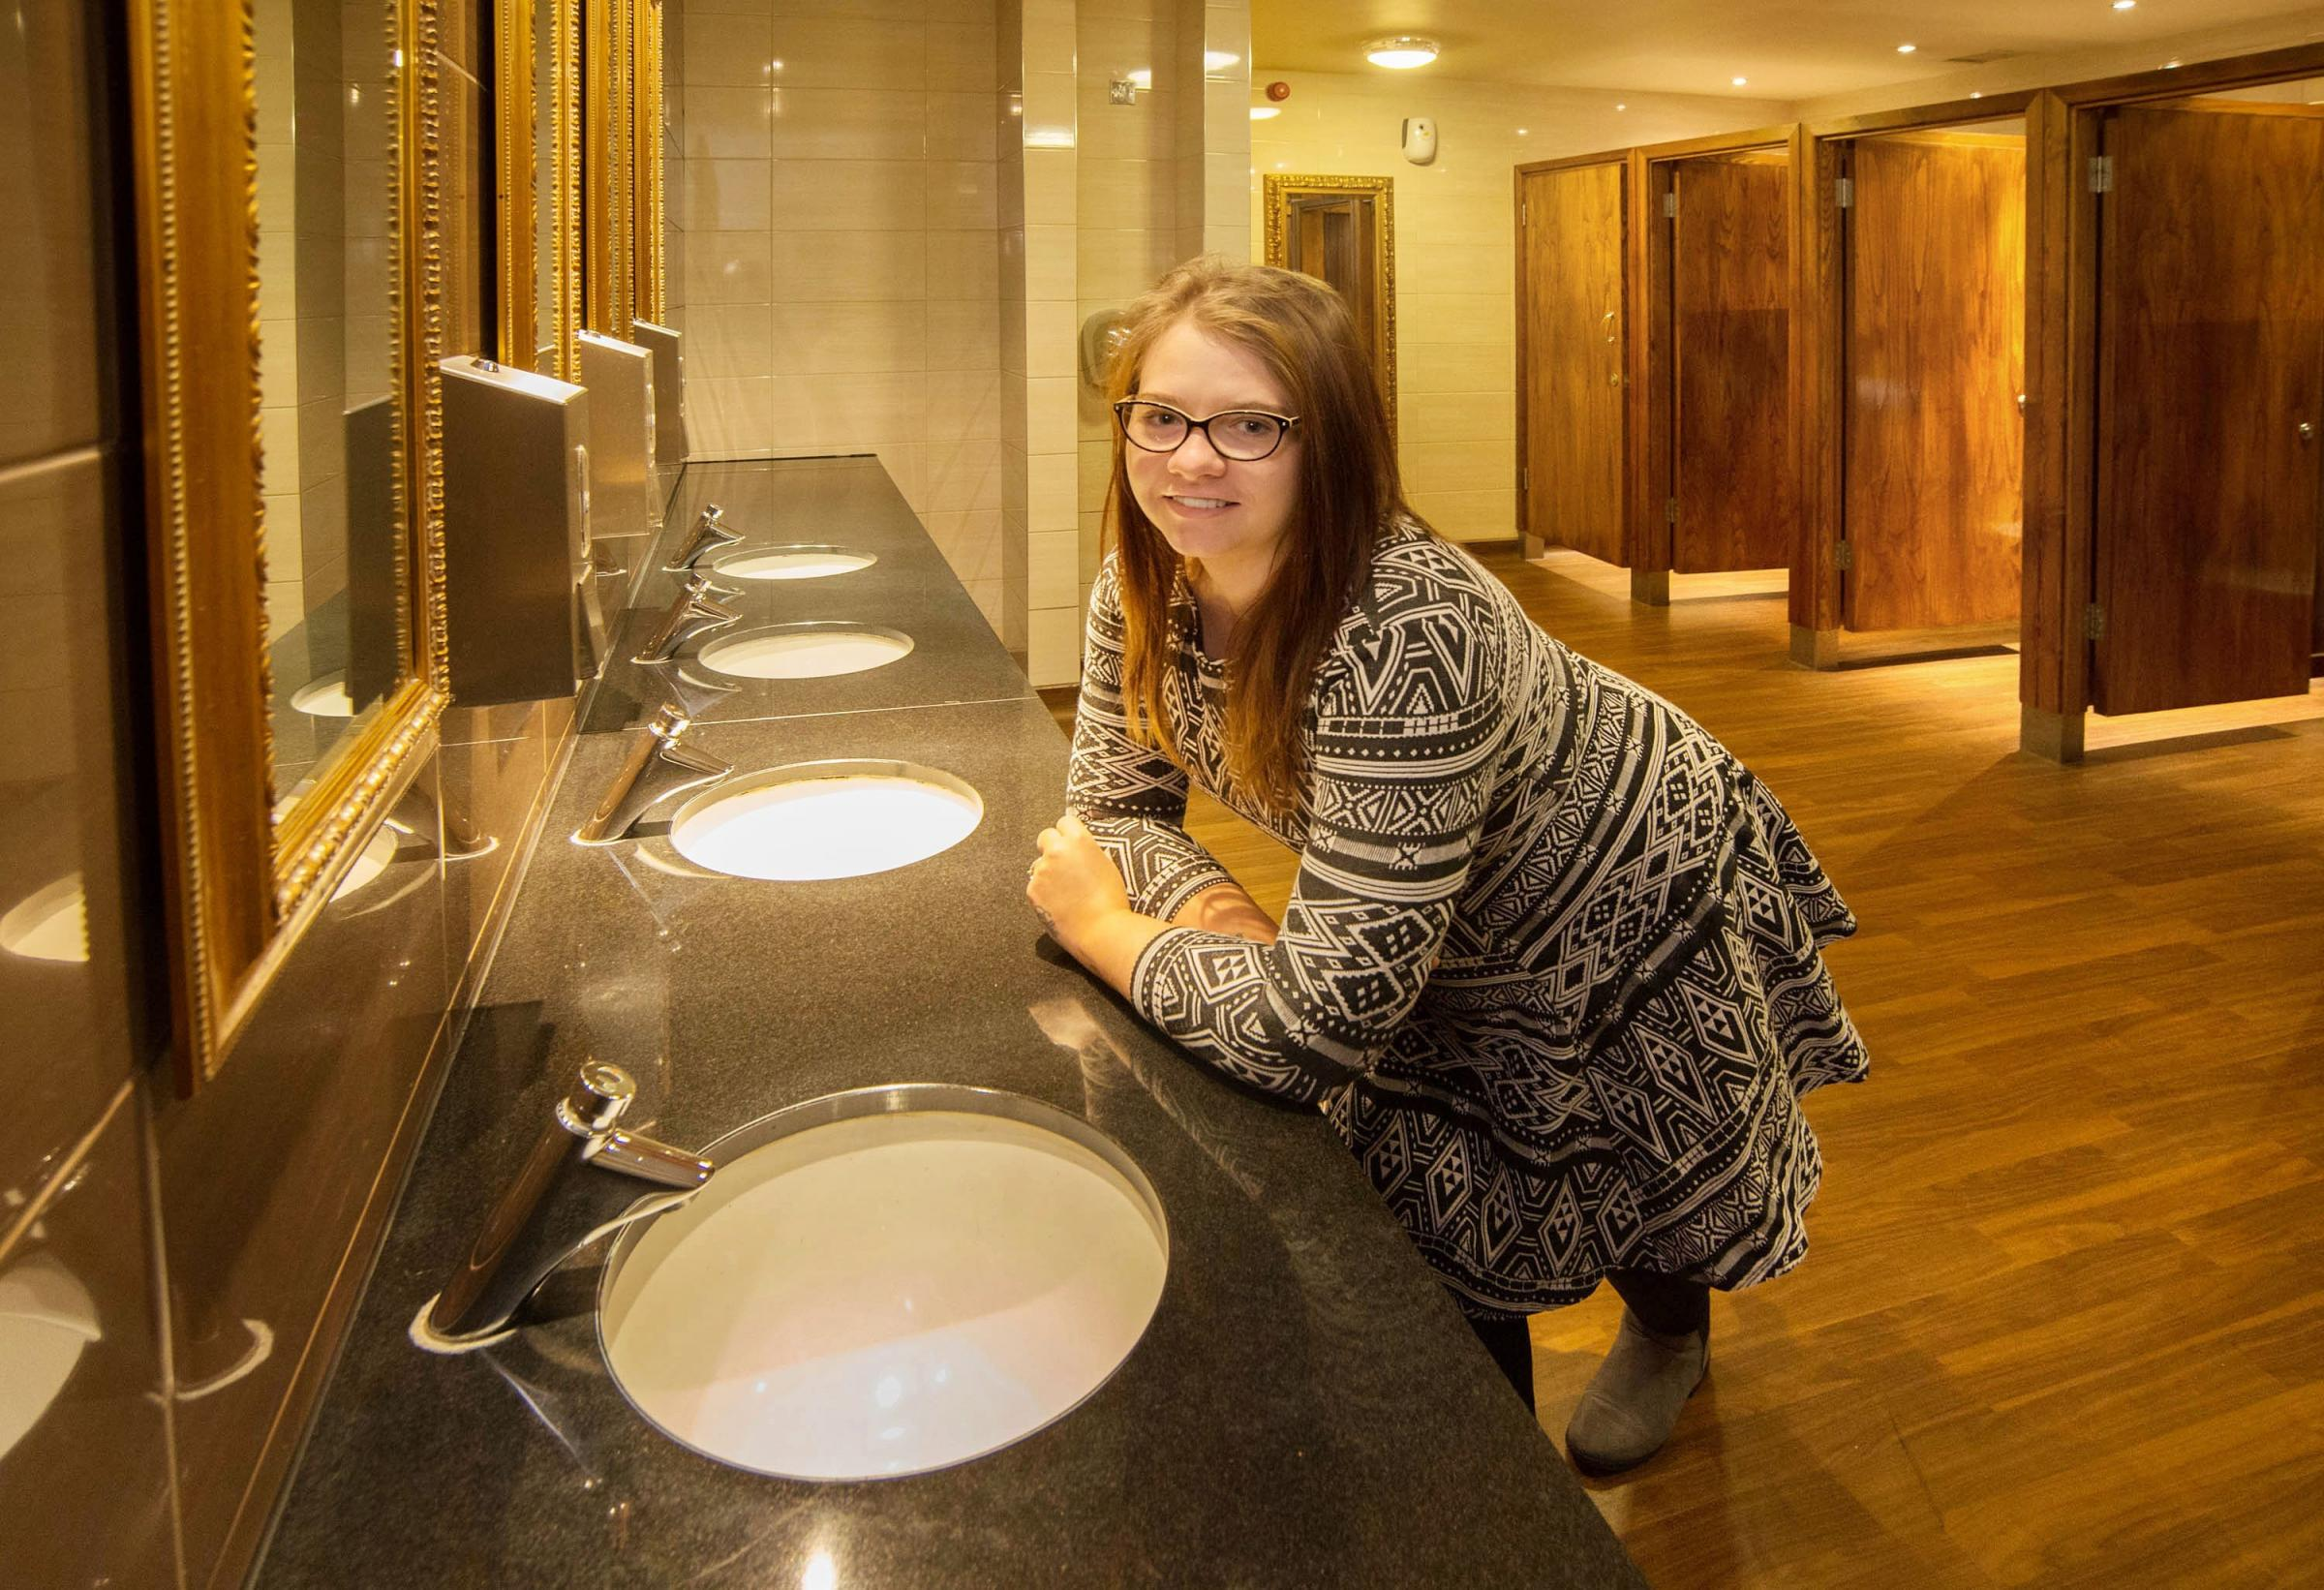 """Redditch pubs win acclaim for their """"exceptional toilets"""""""